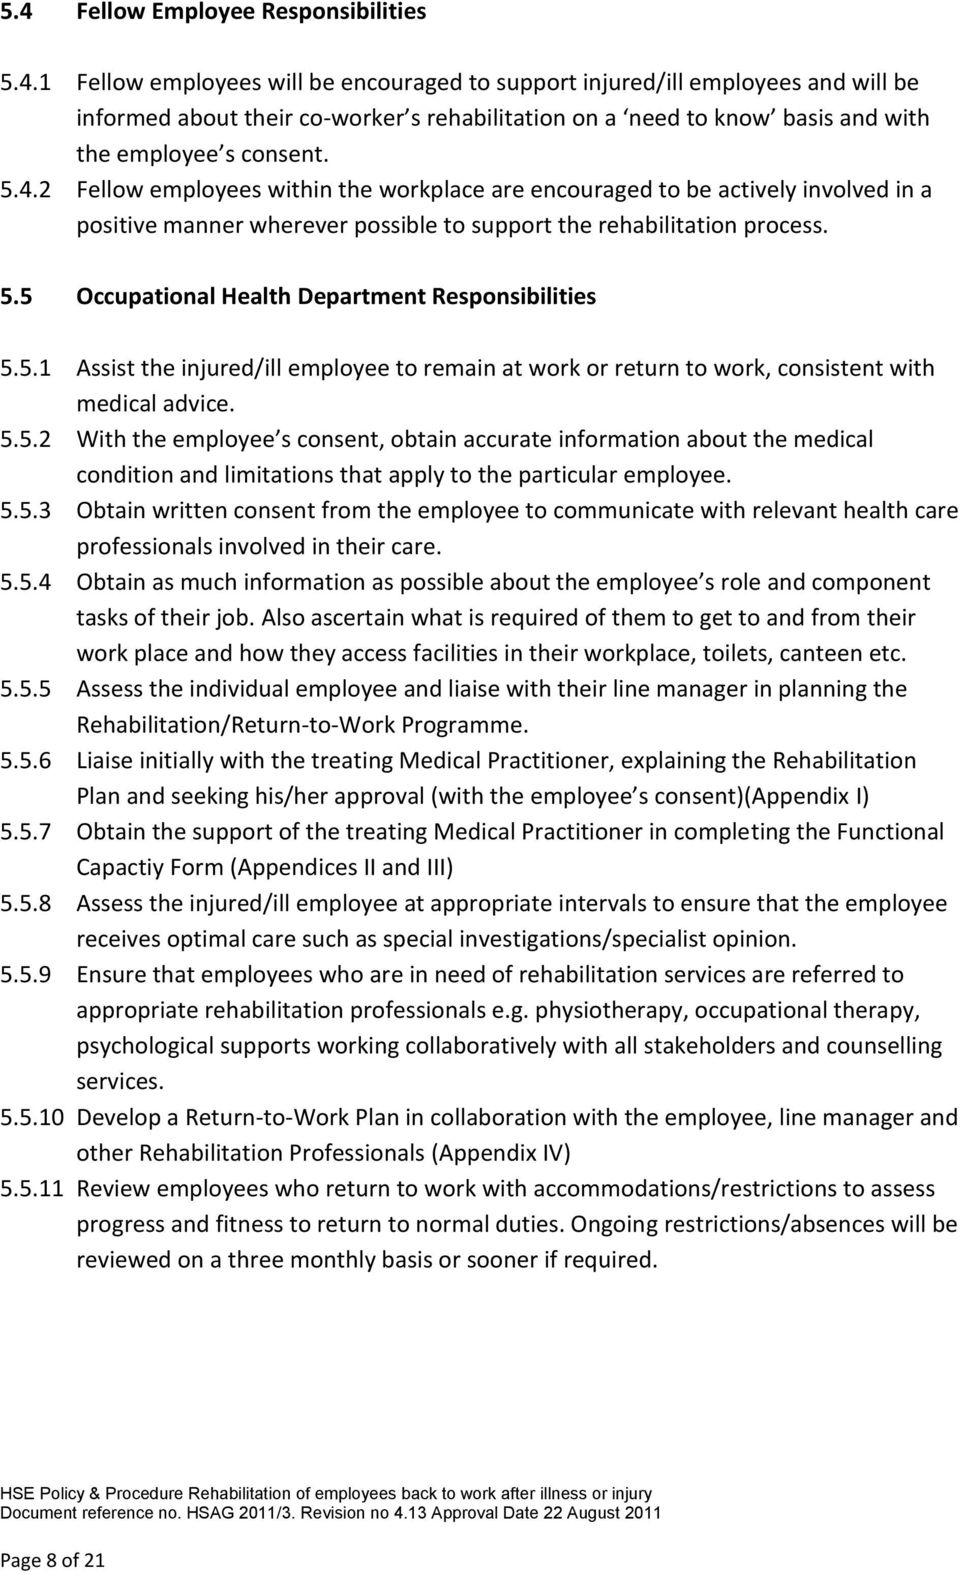 5 Occupational Health Department Responsibilities 5.5.1 Assist the injured/ill employee to remain at work or return to work, consistent with medical advice. 5.5.2 With the employee s consent, obtain accurate information about the medical condition and limitations that apply to the particular employee.